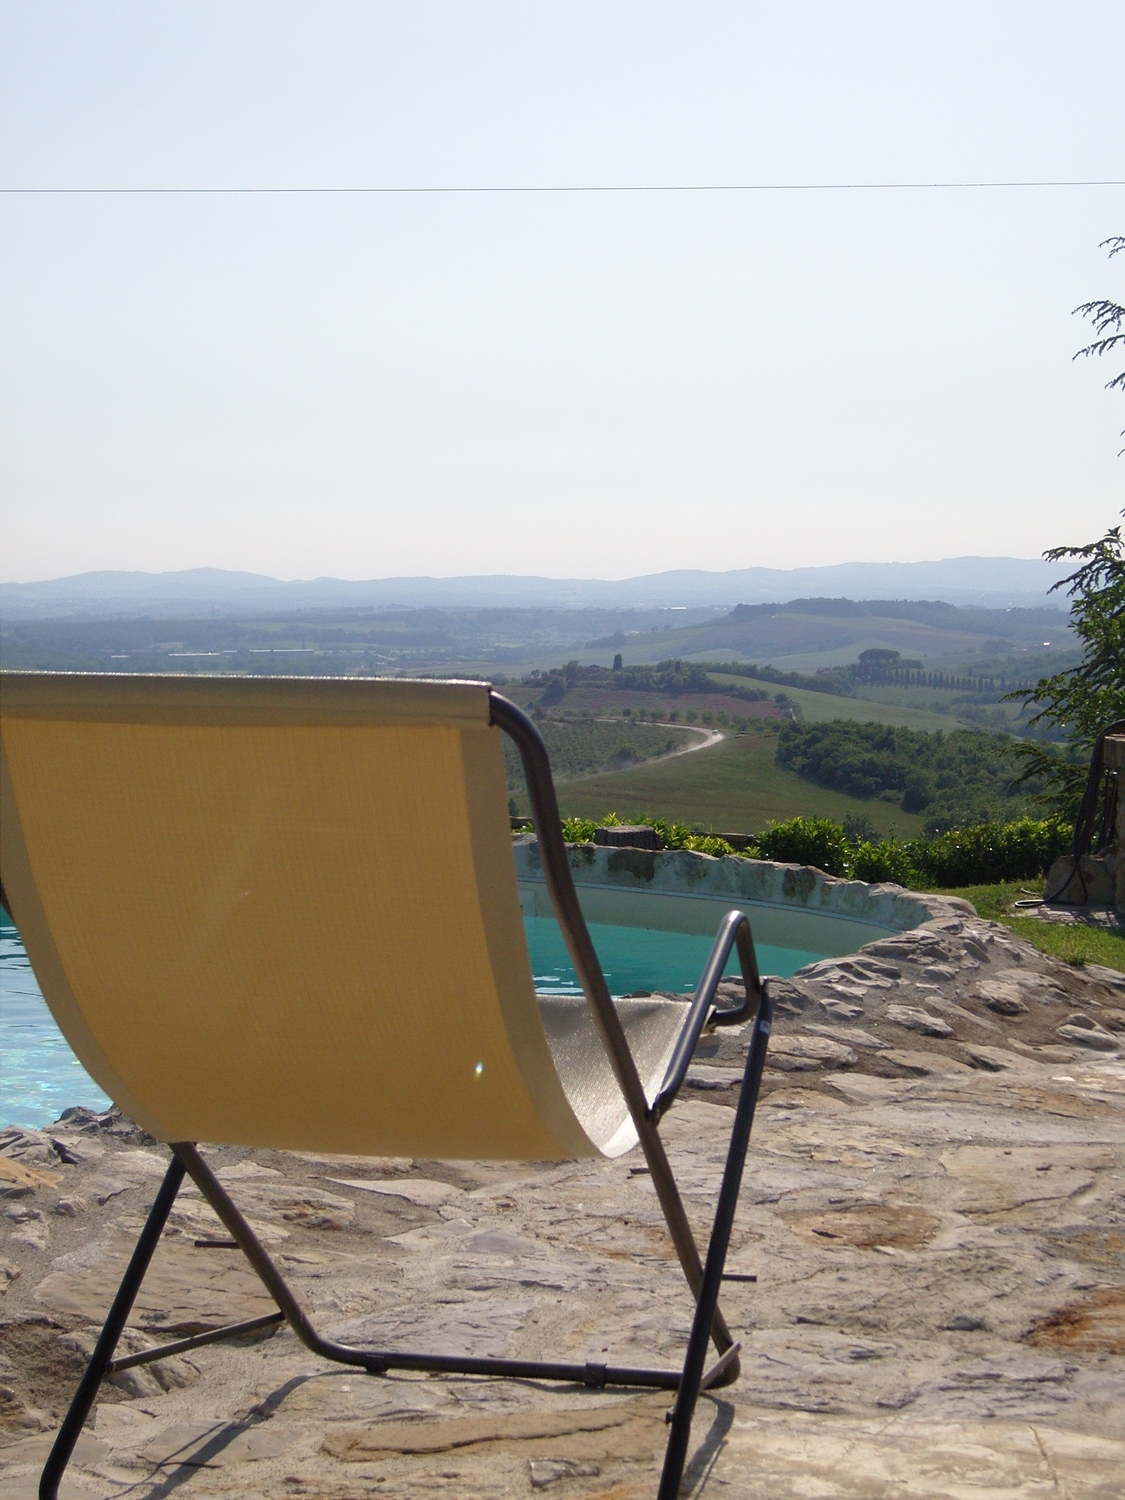 Copy of tuscan view